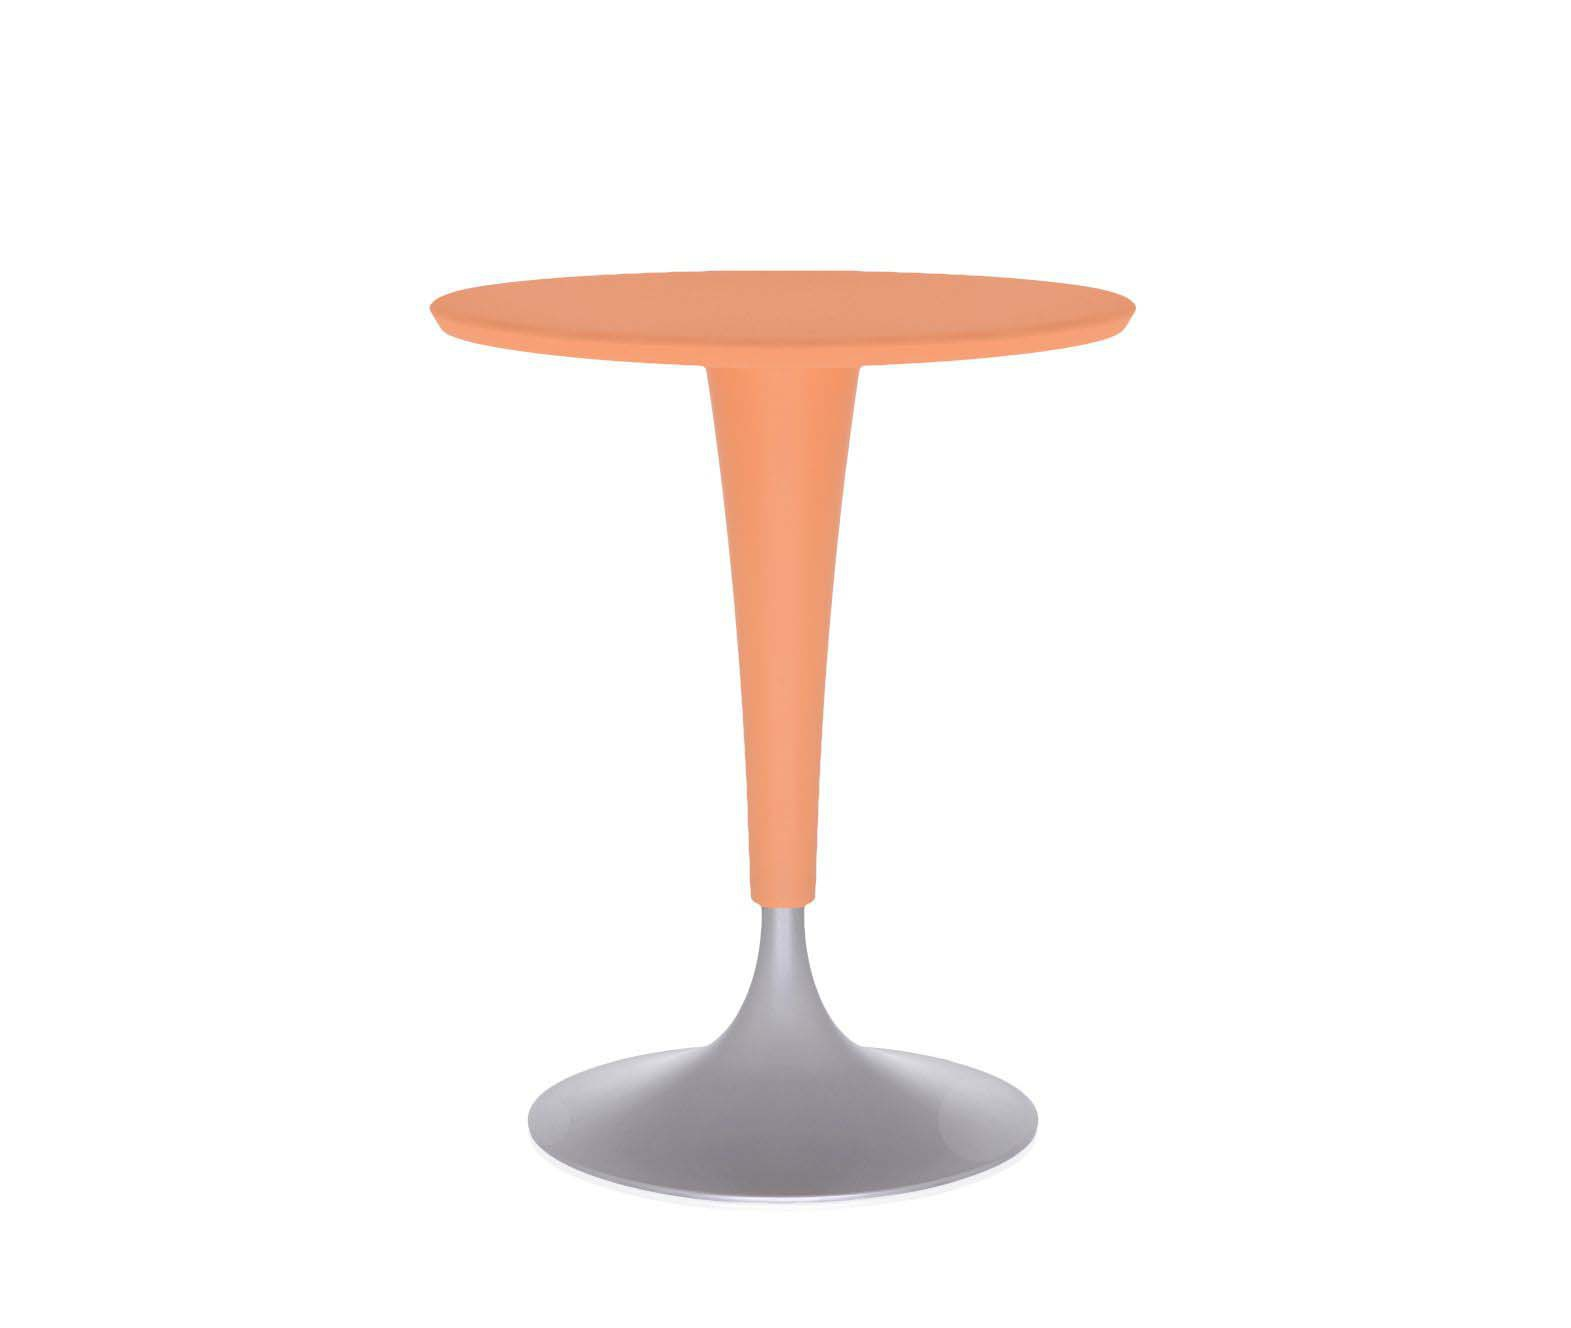 Kartell Round Table Round Table Plastic Drna Kartell Luxury Furniture Mr